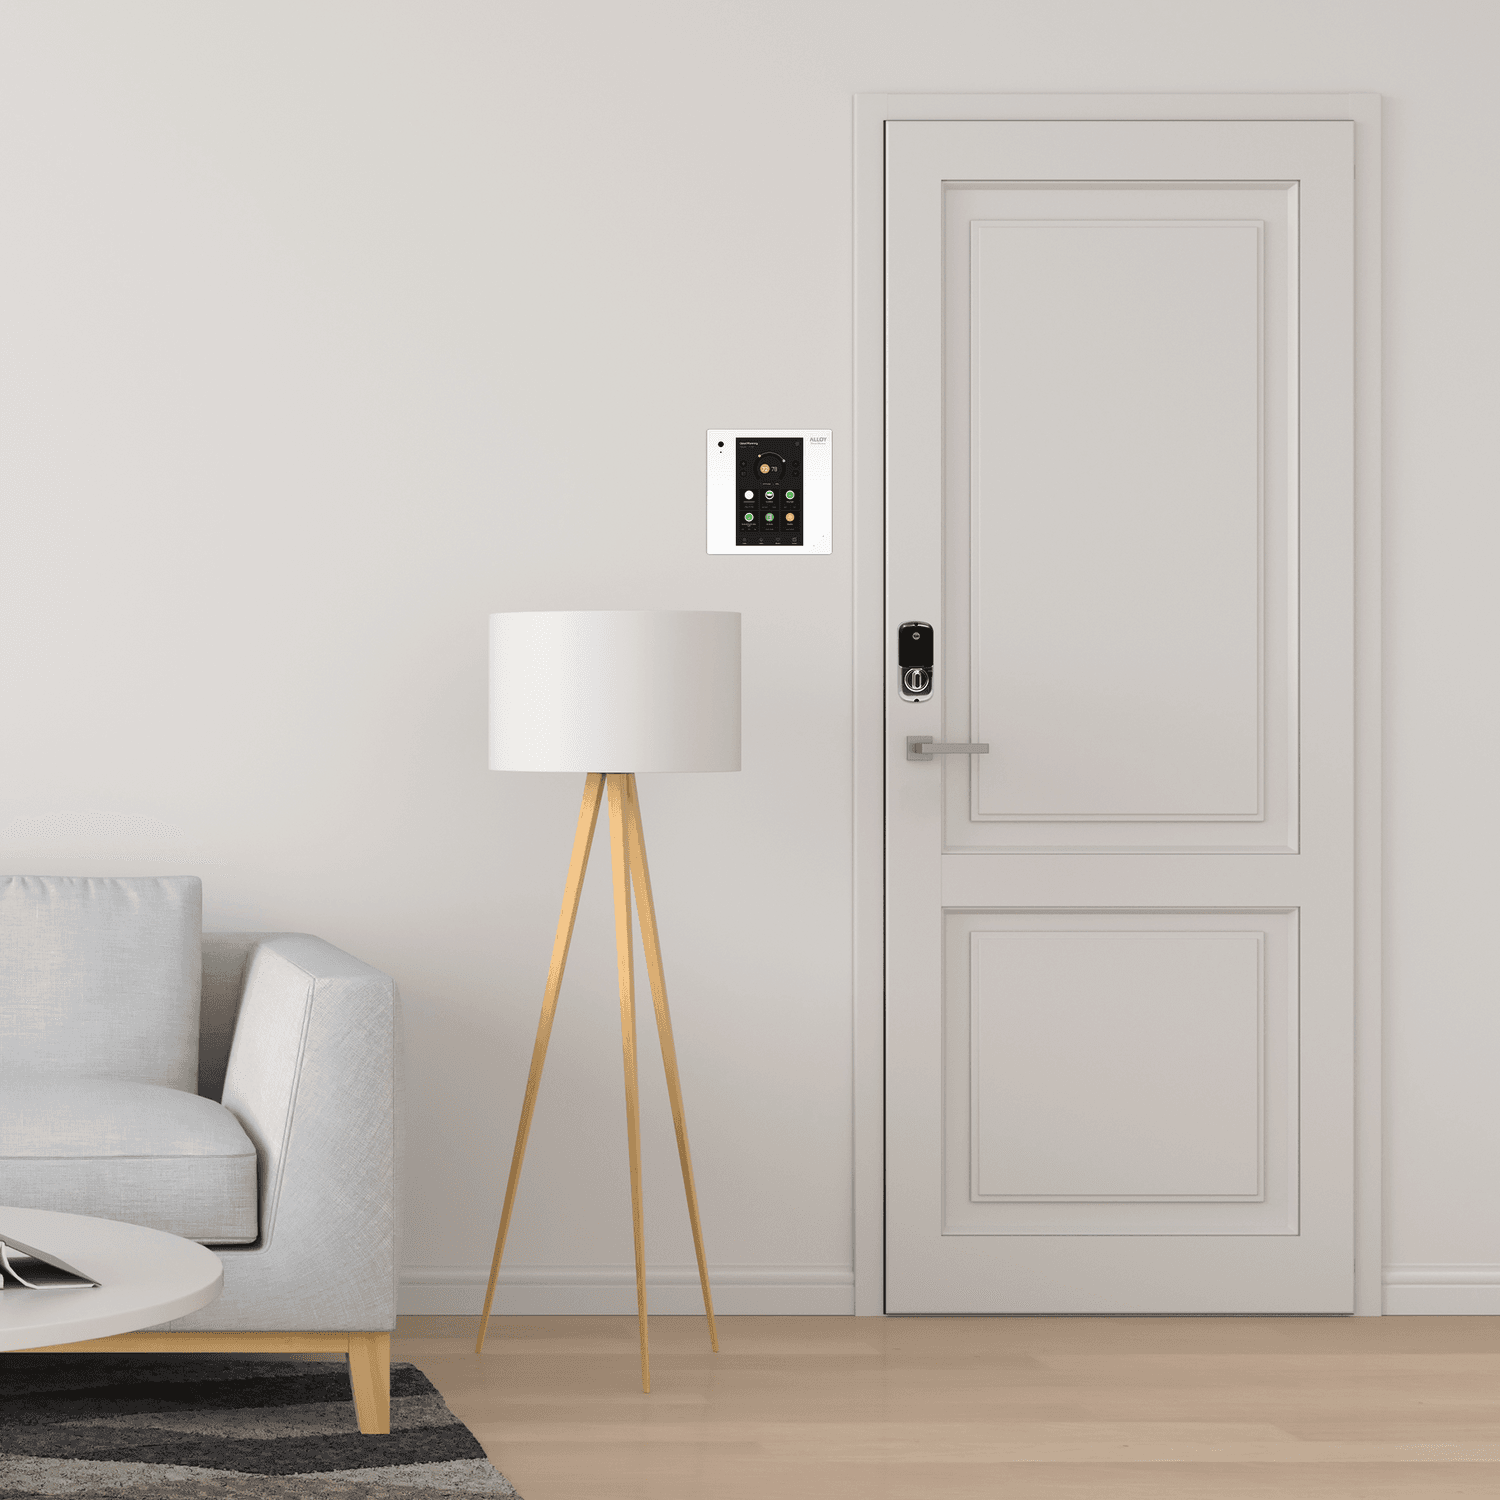 image of front door with smart home hub and lamp in view from inside